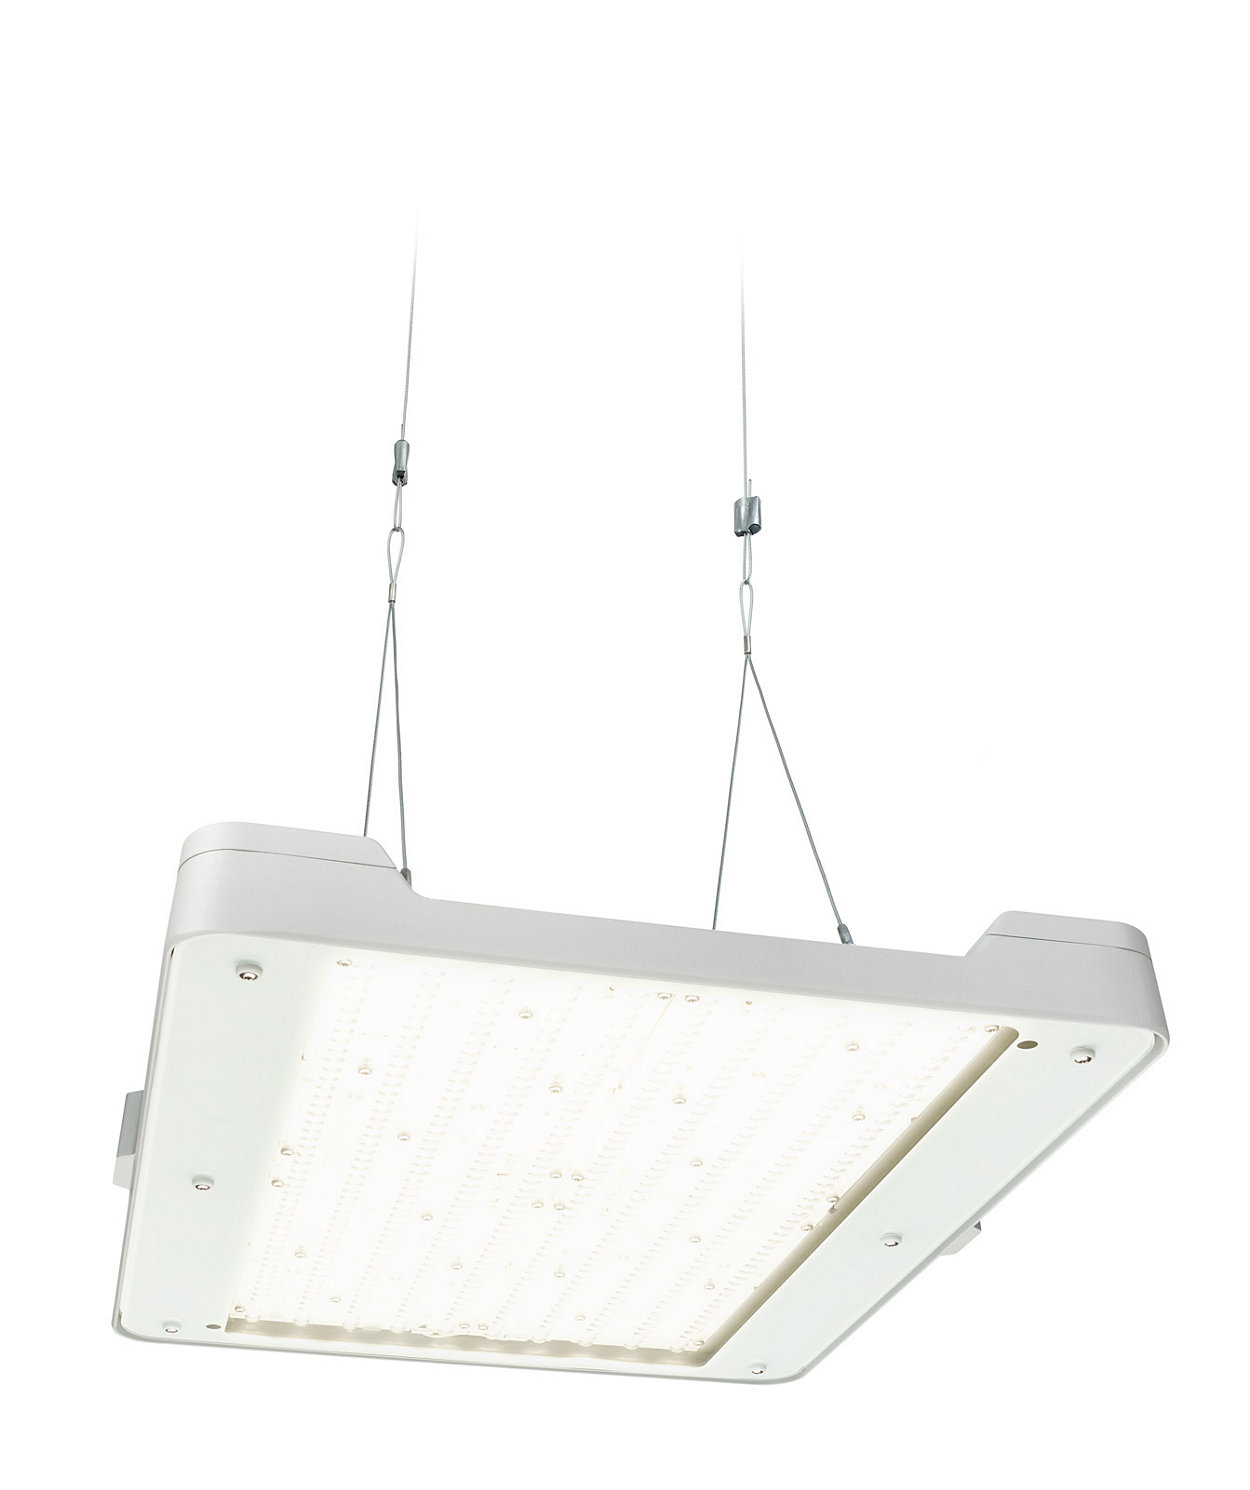 GentleSpace gen3: adaptable high-bay lighting offering high-efficiency and connectivity options to lighting systems and software applications.